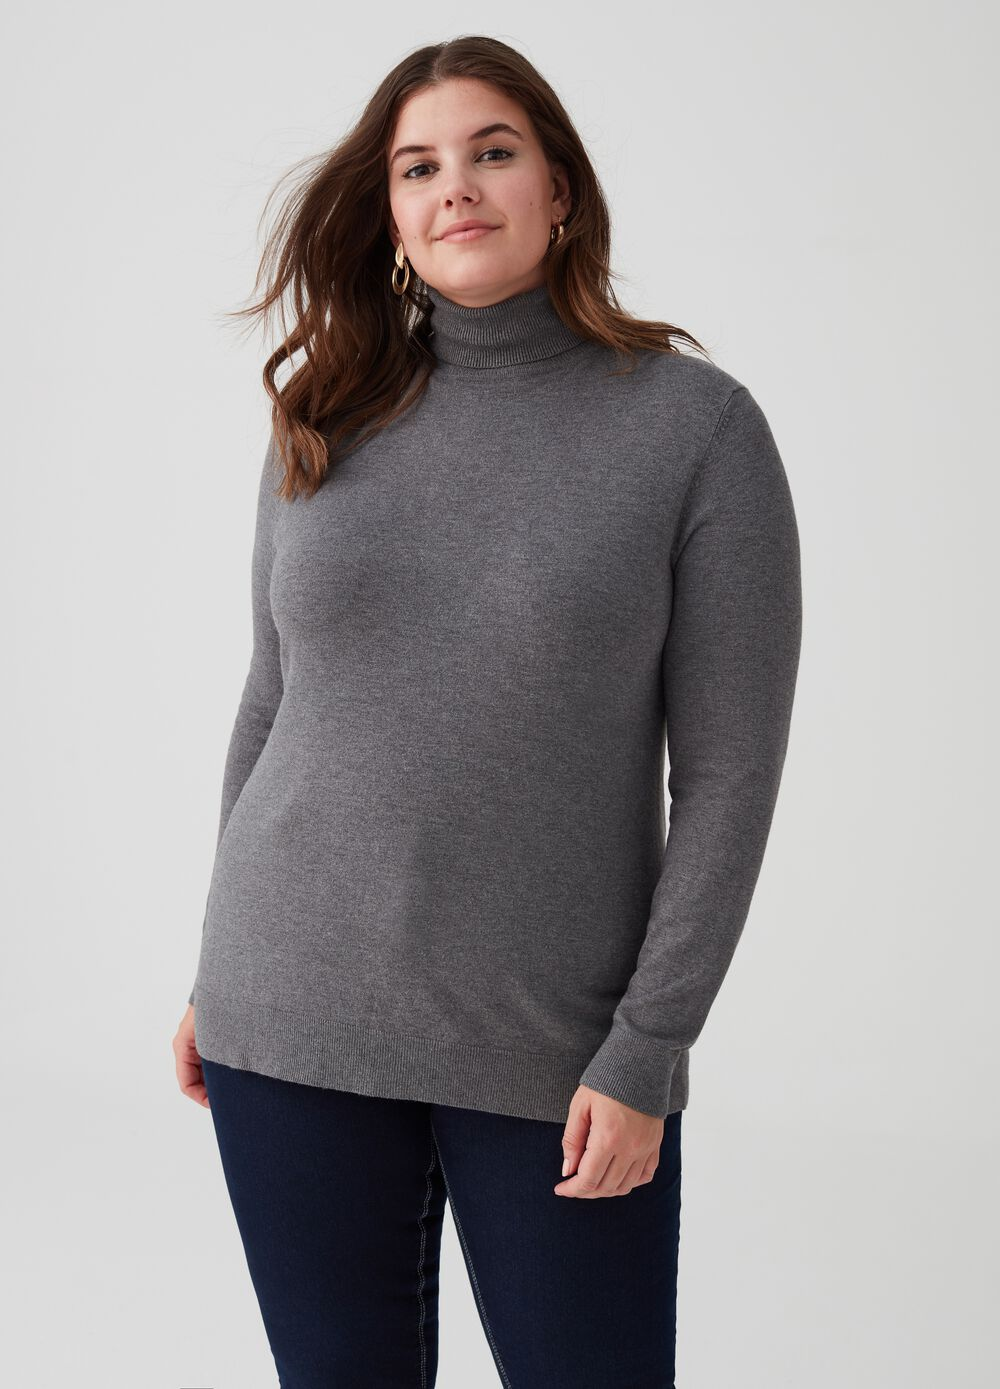 Curvy stretch pullover with high neck